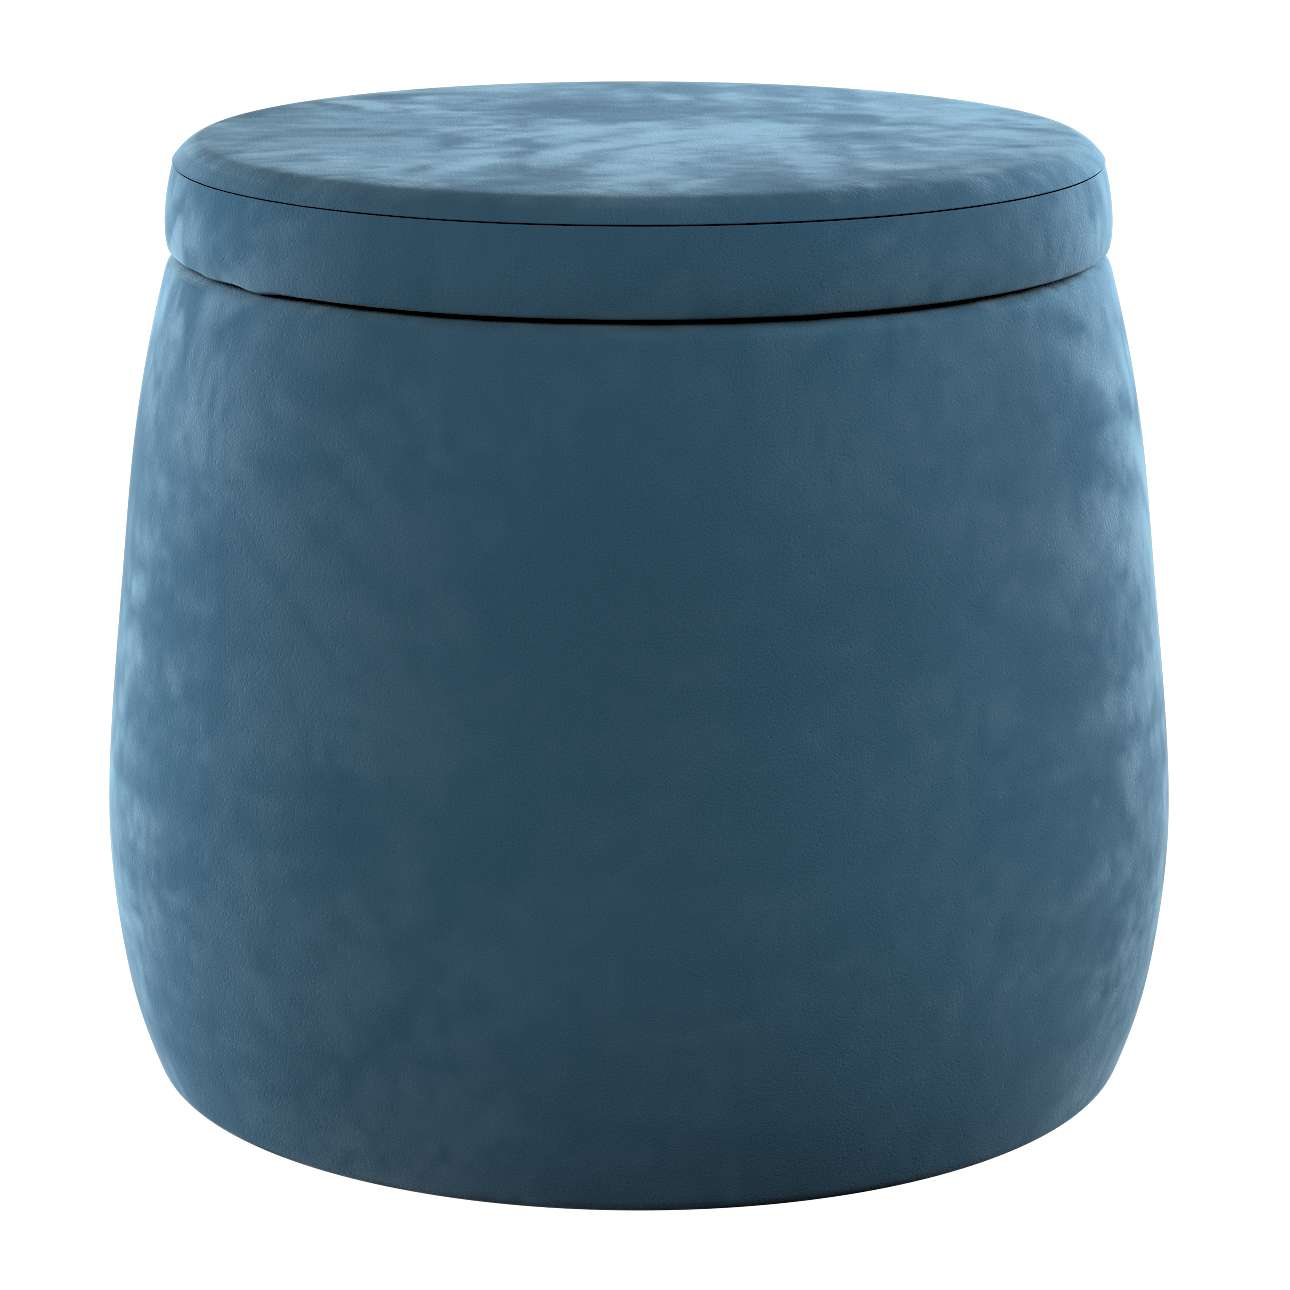 Candy Jar pouf in collection Posh Velvet, fabric: 704-16